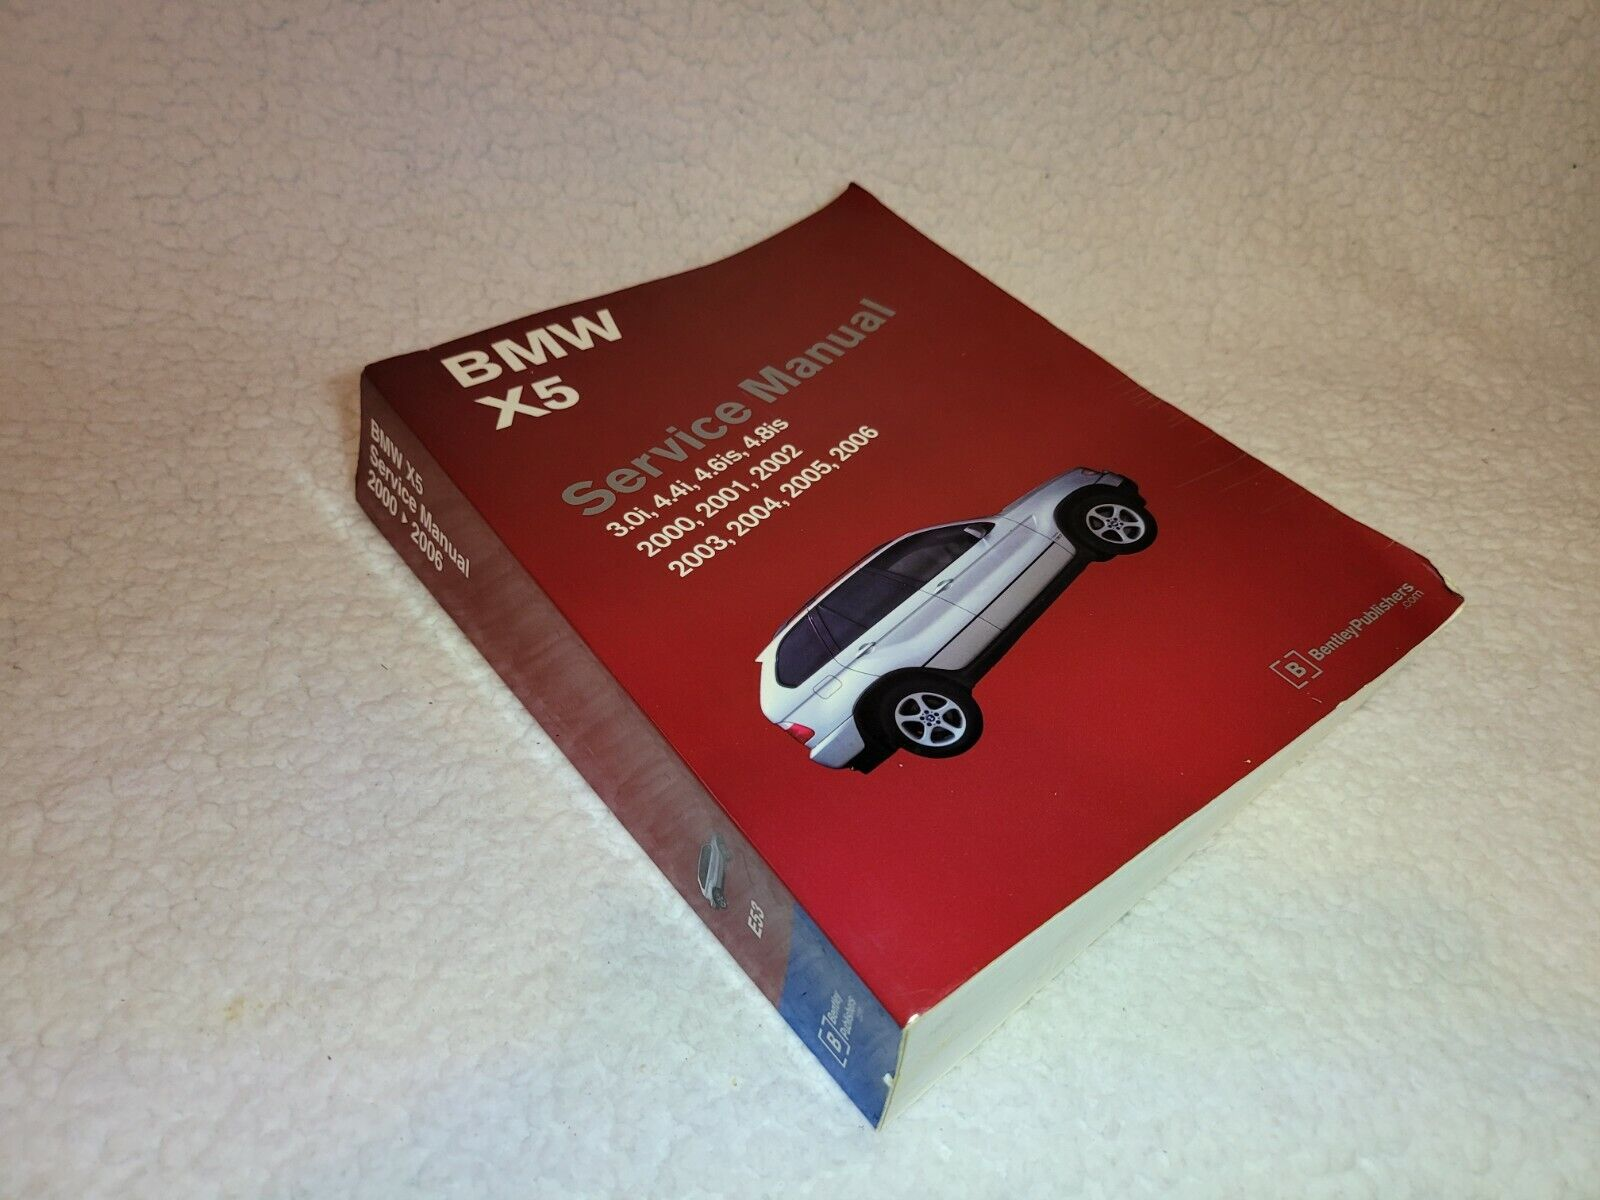 Bmw X5 Service Manual E53 2000 To 2006 By Bentley Publishers 2007 For Sale Online Ebay